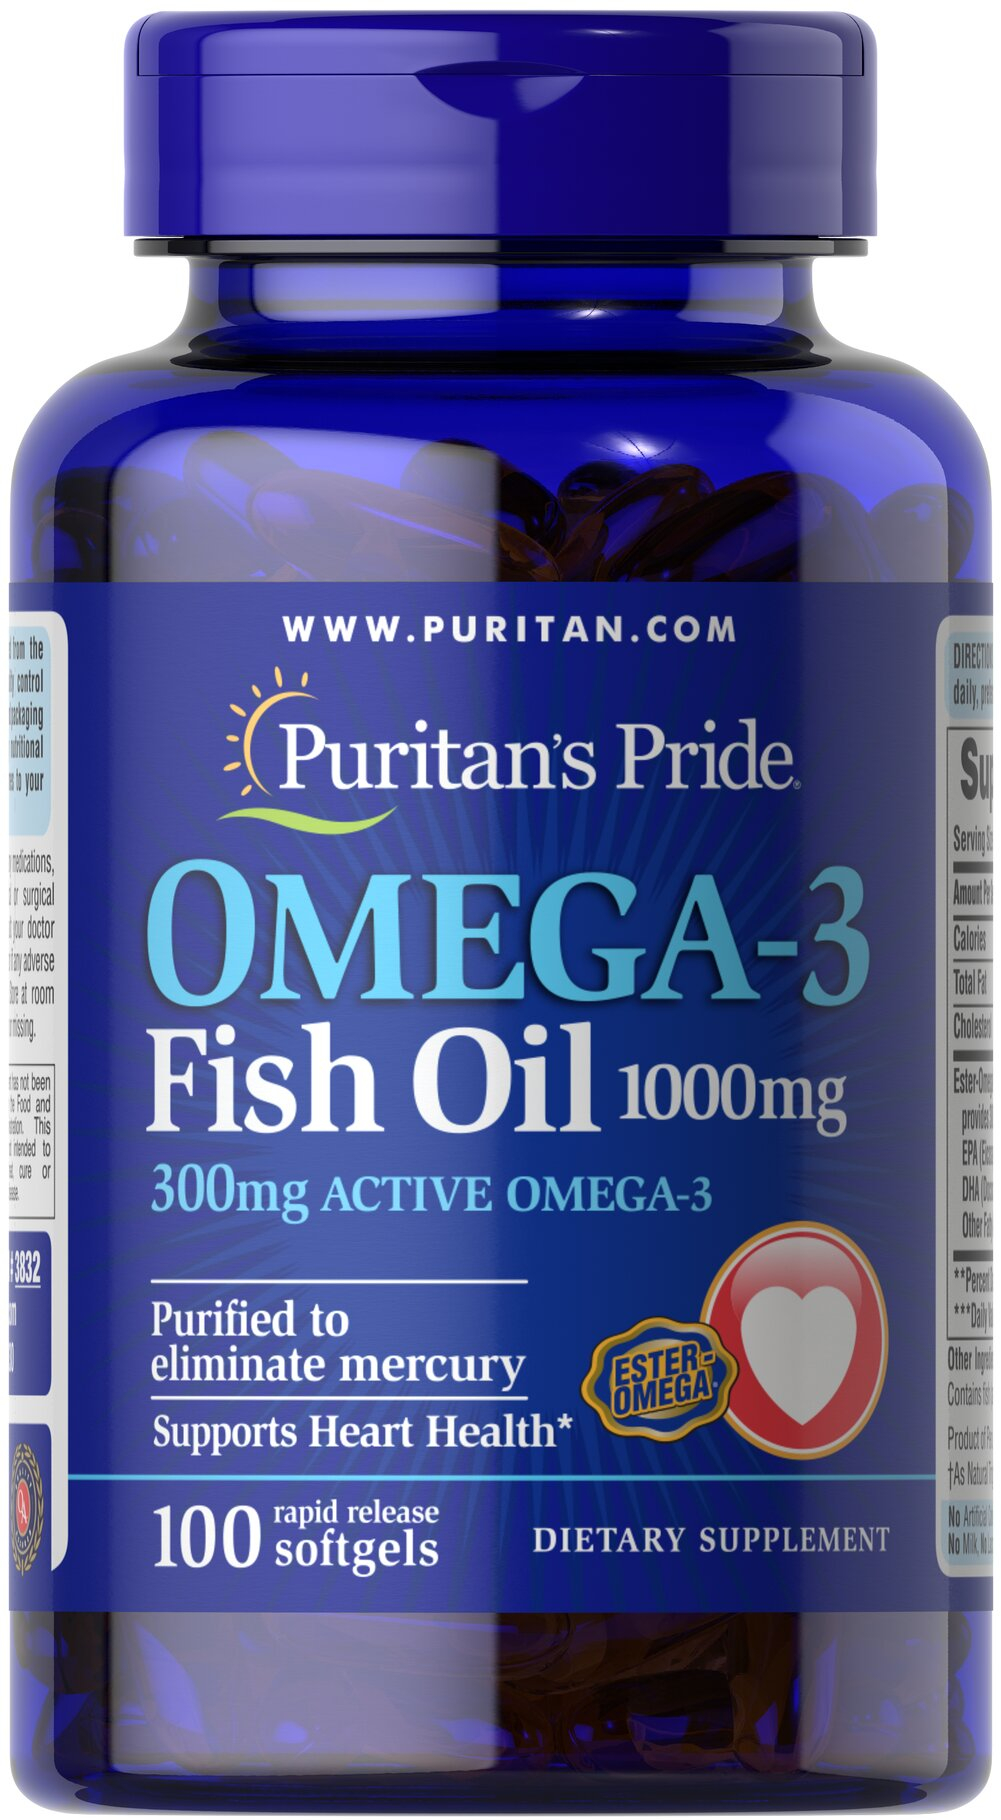 Omega-3 Fish Oil 1000 mg (300 mg Active Omega-3) <p><span></span></p><p>•    Provides 300mg of active Omega-3<br />•    Supports heart health**<br />•    Purified to eliminate mercury</p><p>This Ester-Omega® Fish Oil provides 300mg of total omega-3 fatty acids, comprising of EPA, DHA and other fatty acids. EPA and DHA fatty acids support heart health.** Puri